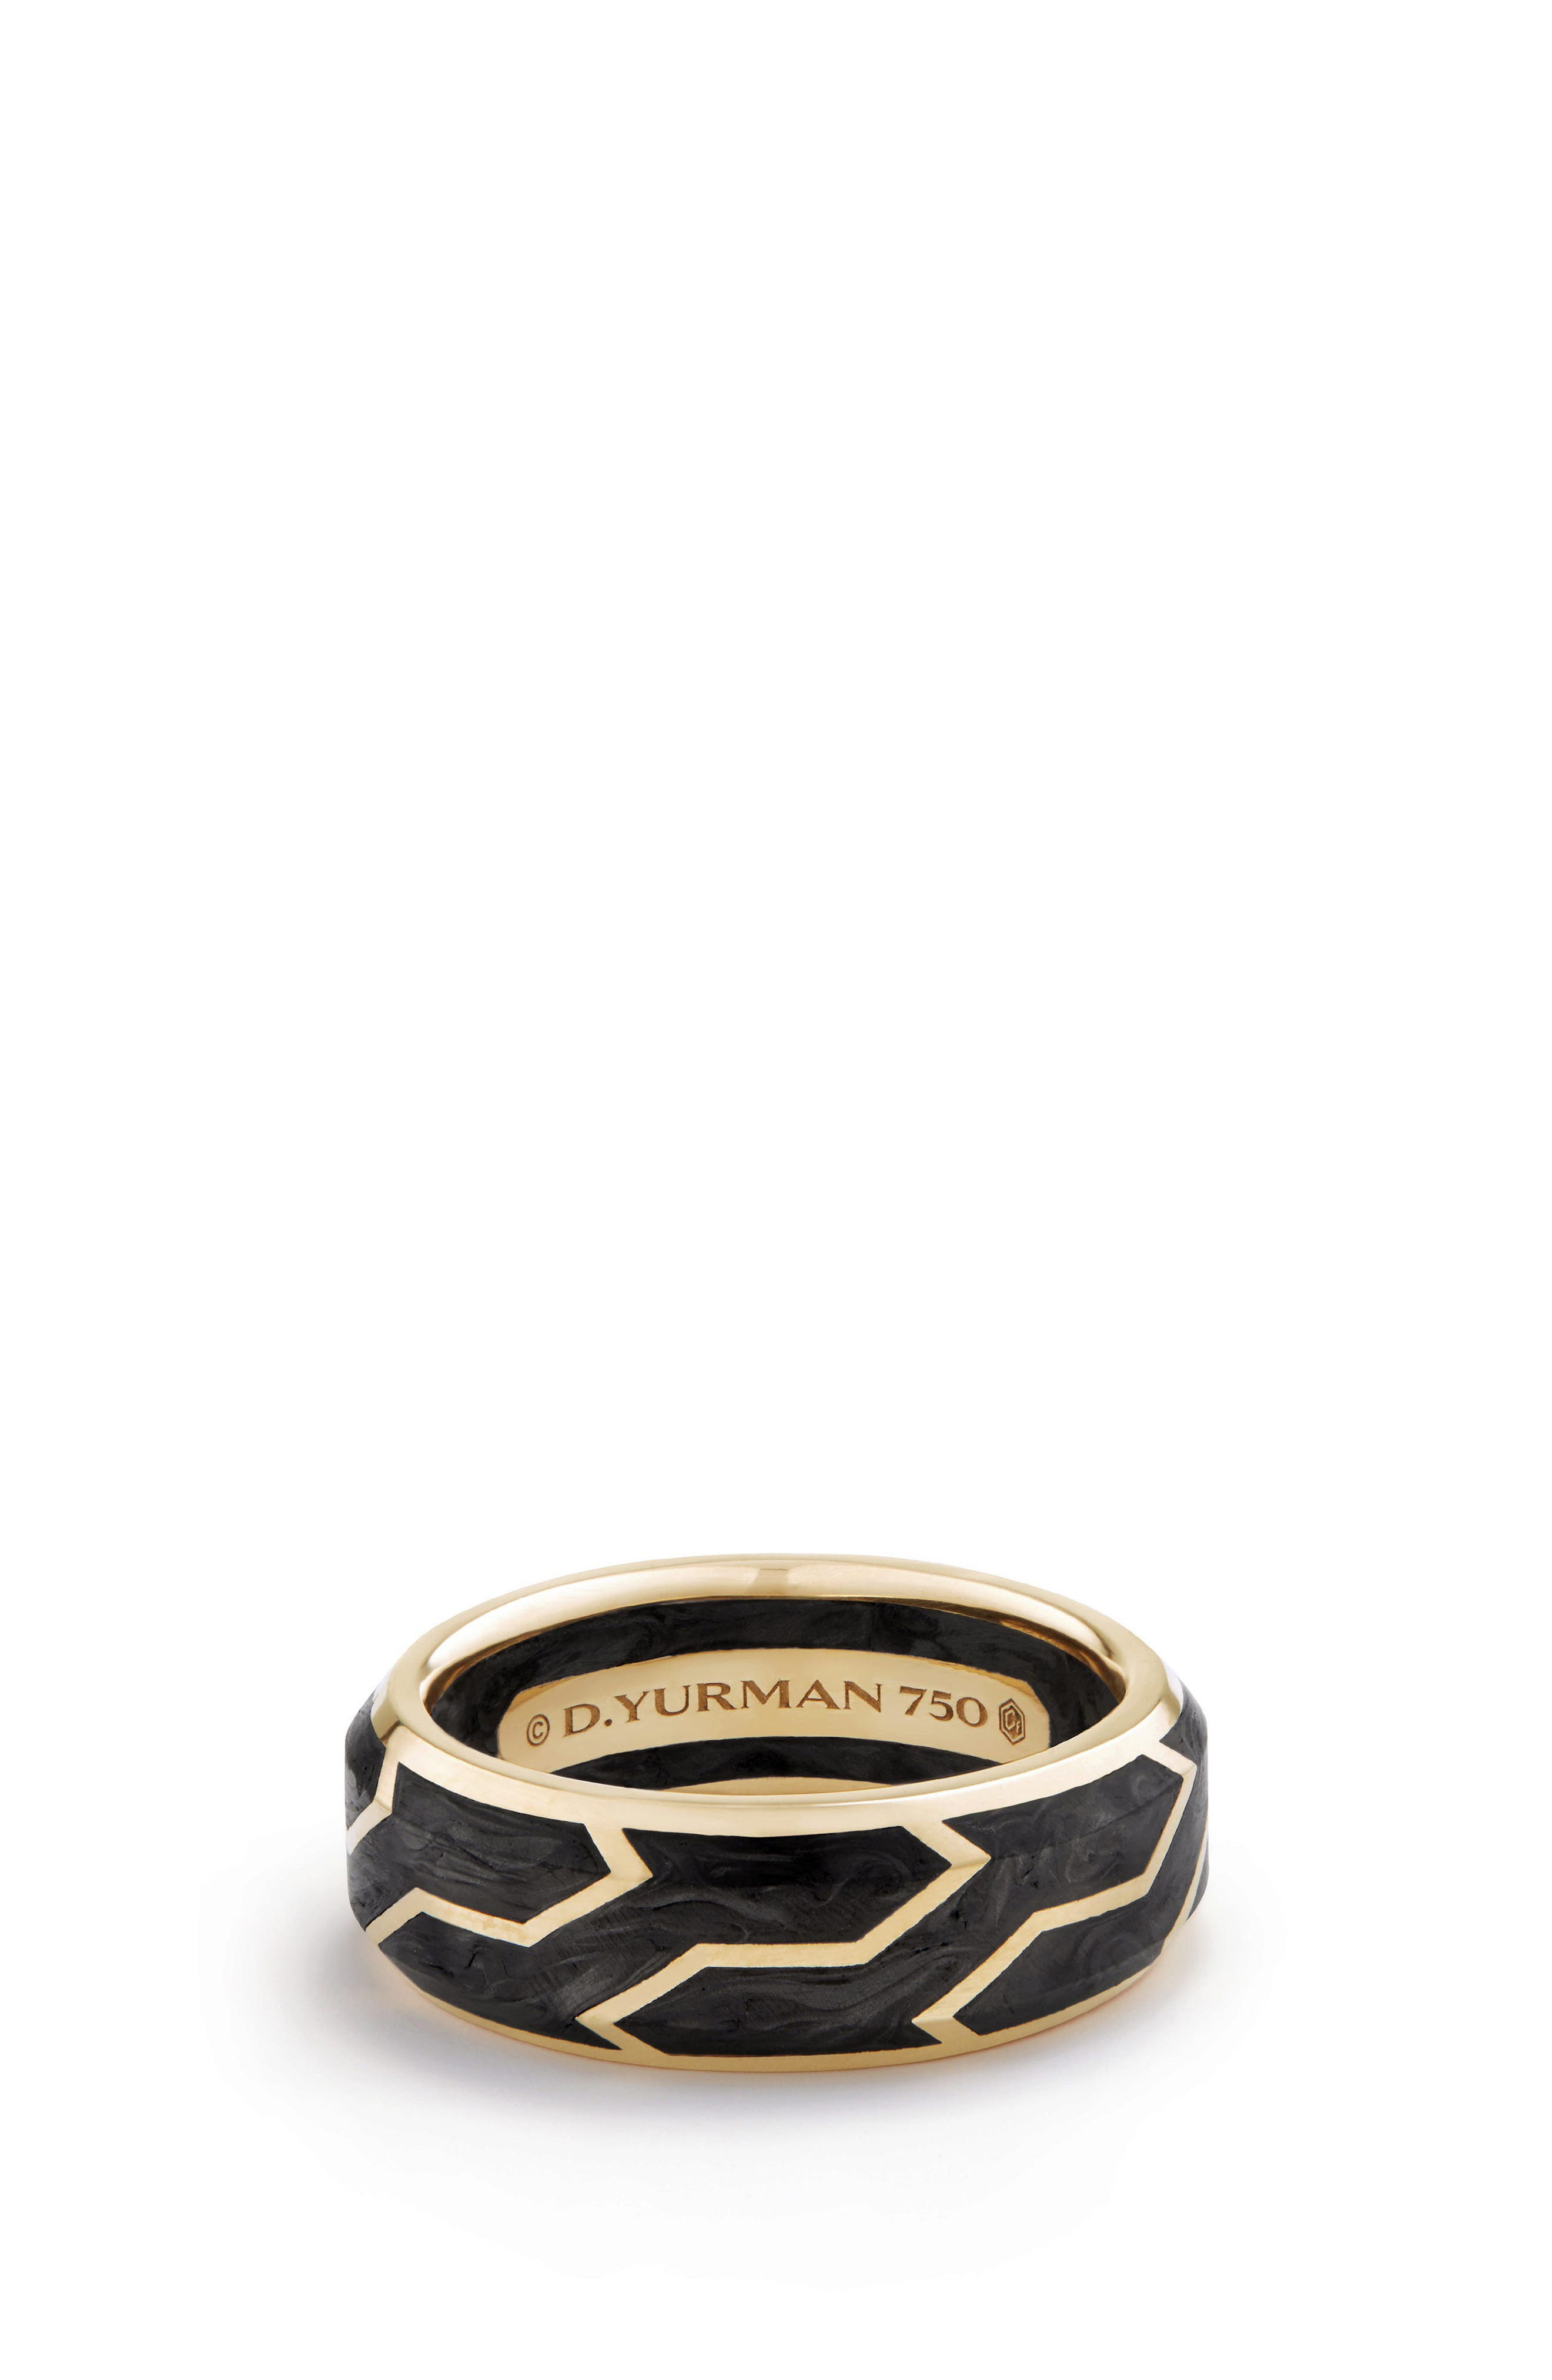 Forged Carbon Band Ring in 18K Gold, 8.5mm,                             Main thumbnail 1, color,                             Forged Carbon